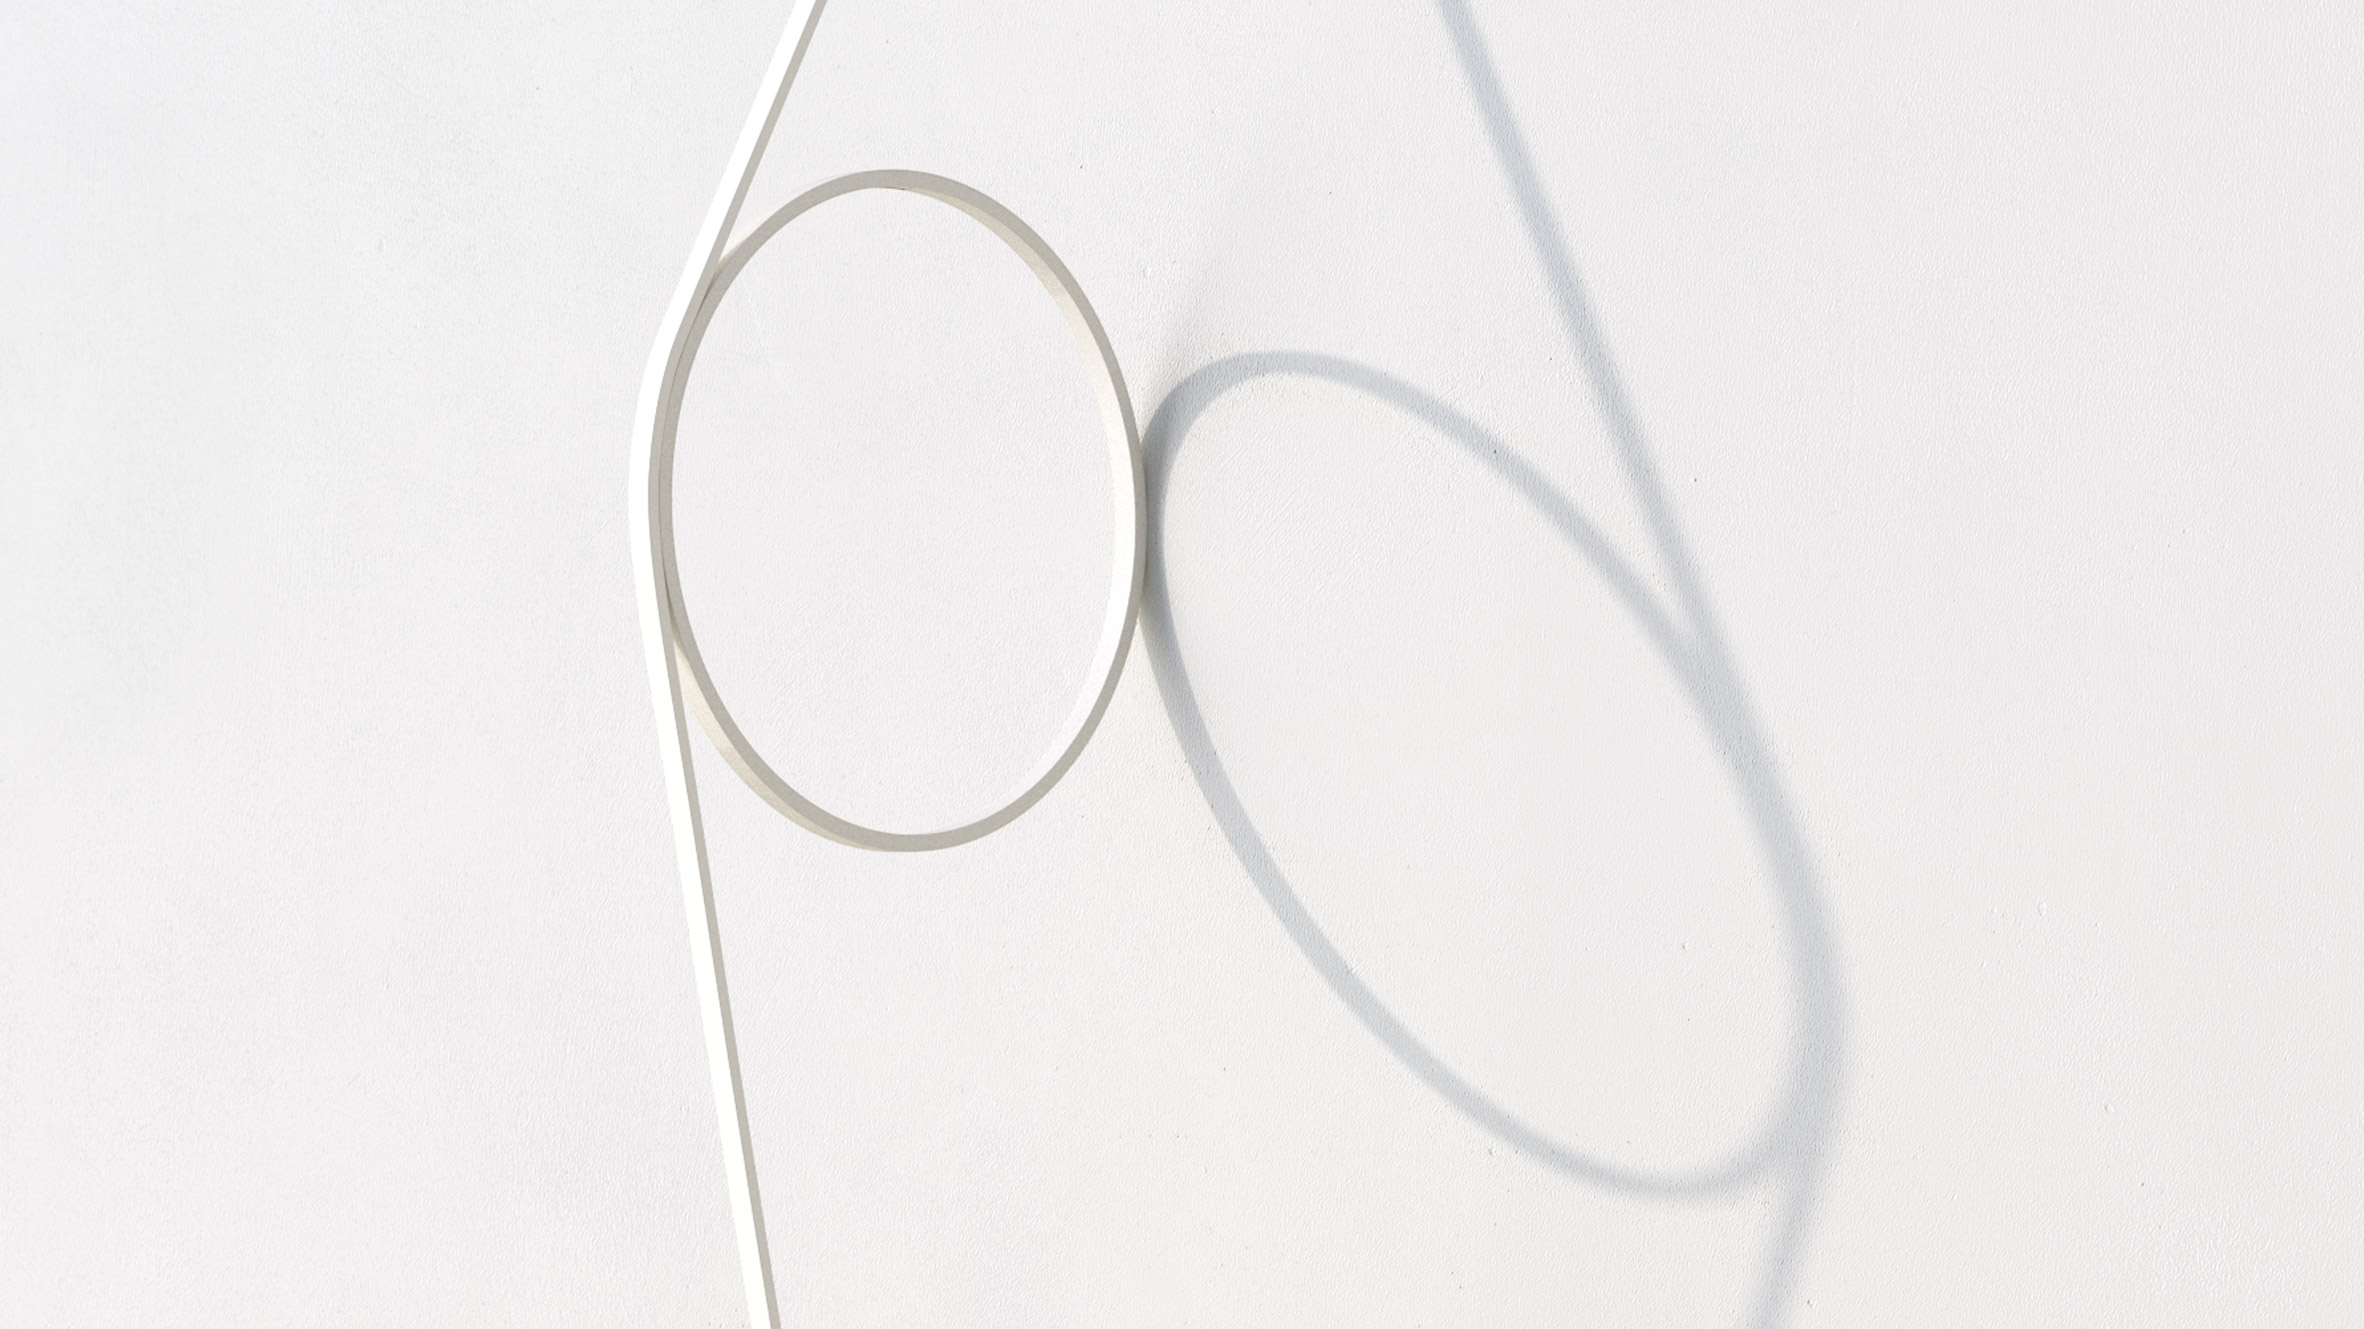 Formafantasmas Wire Ring Lamp Turns The Power Cable Into A Design Wiring Black White Feature